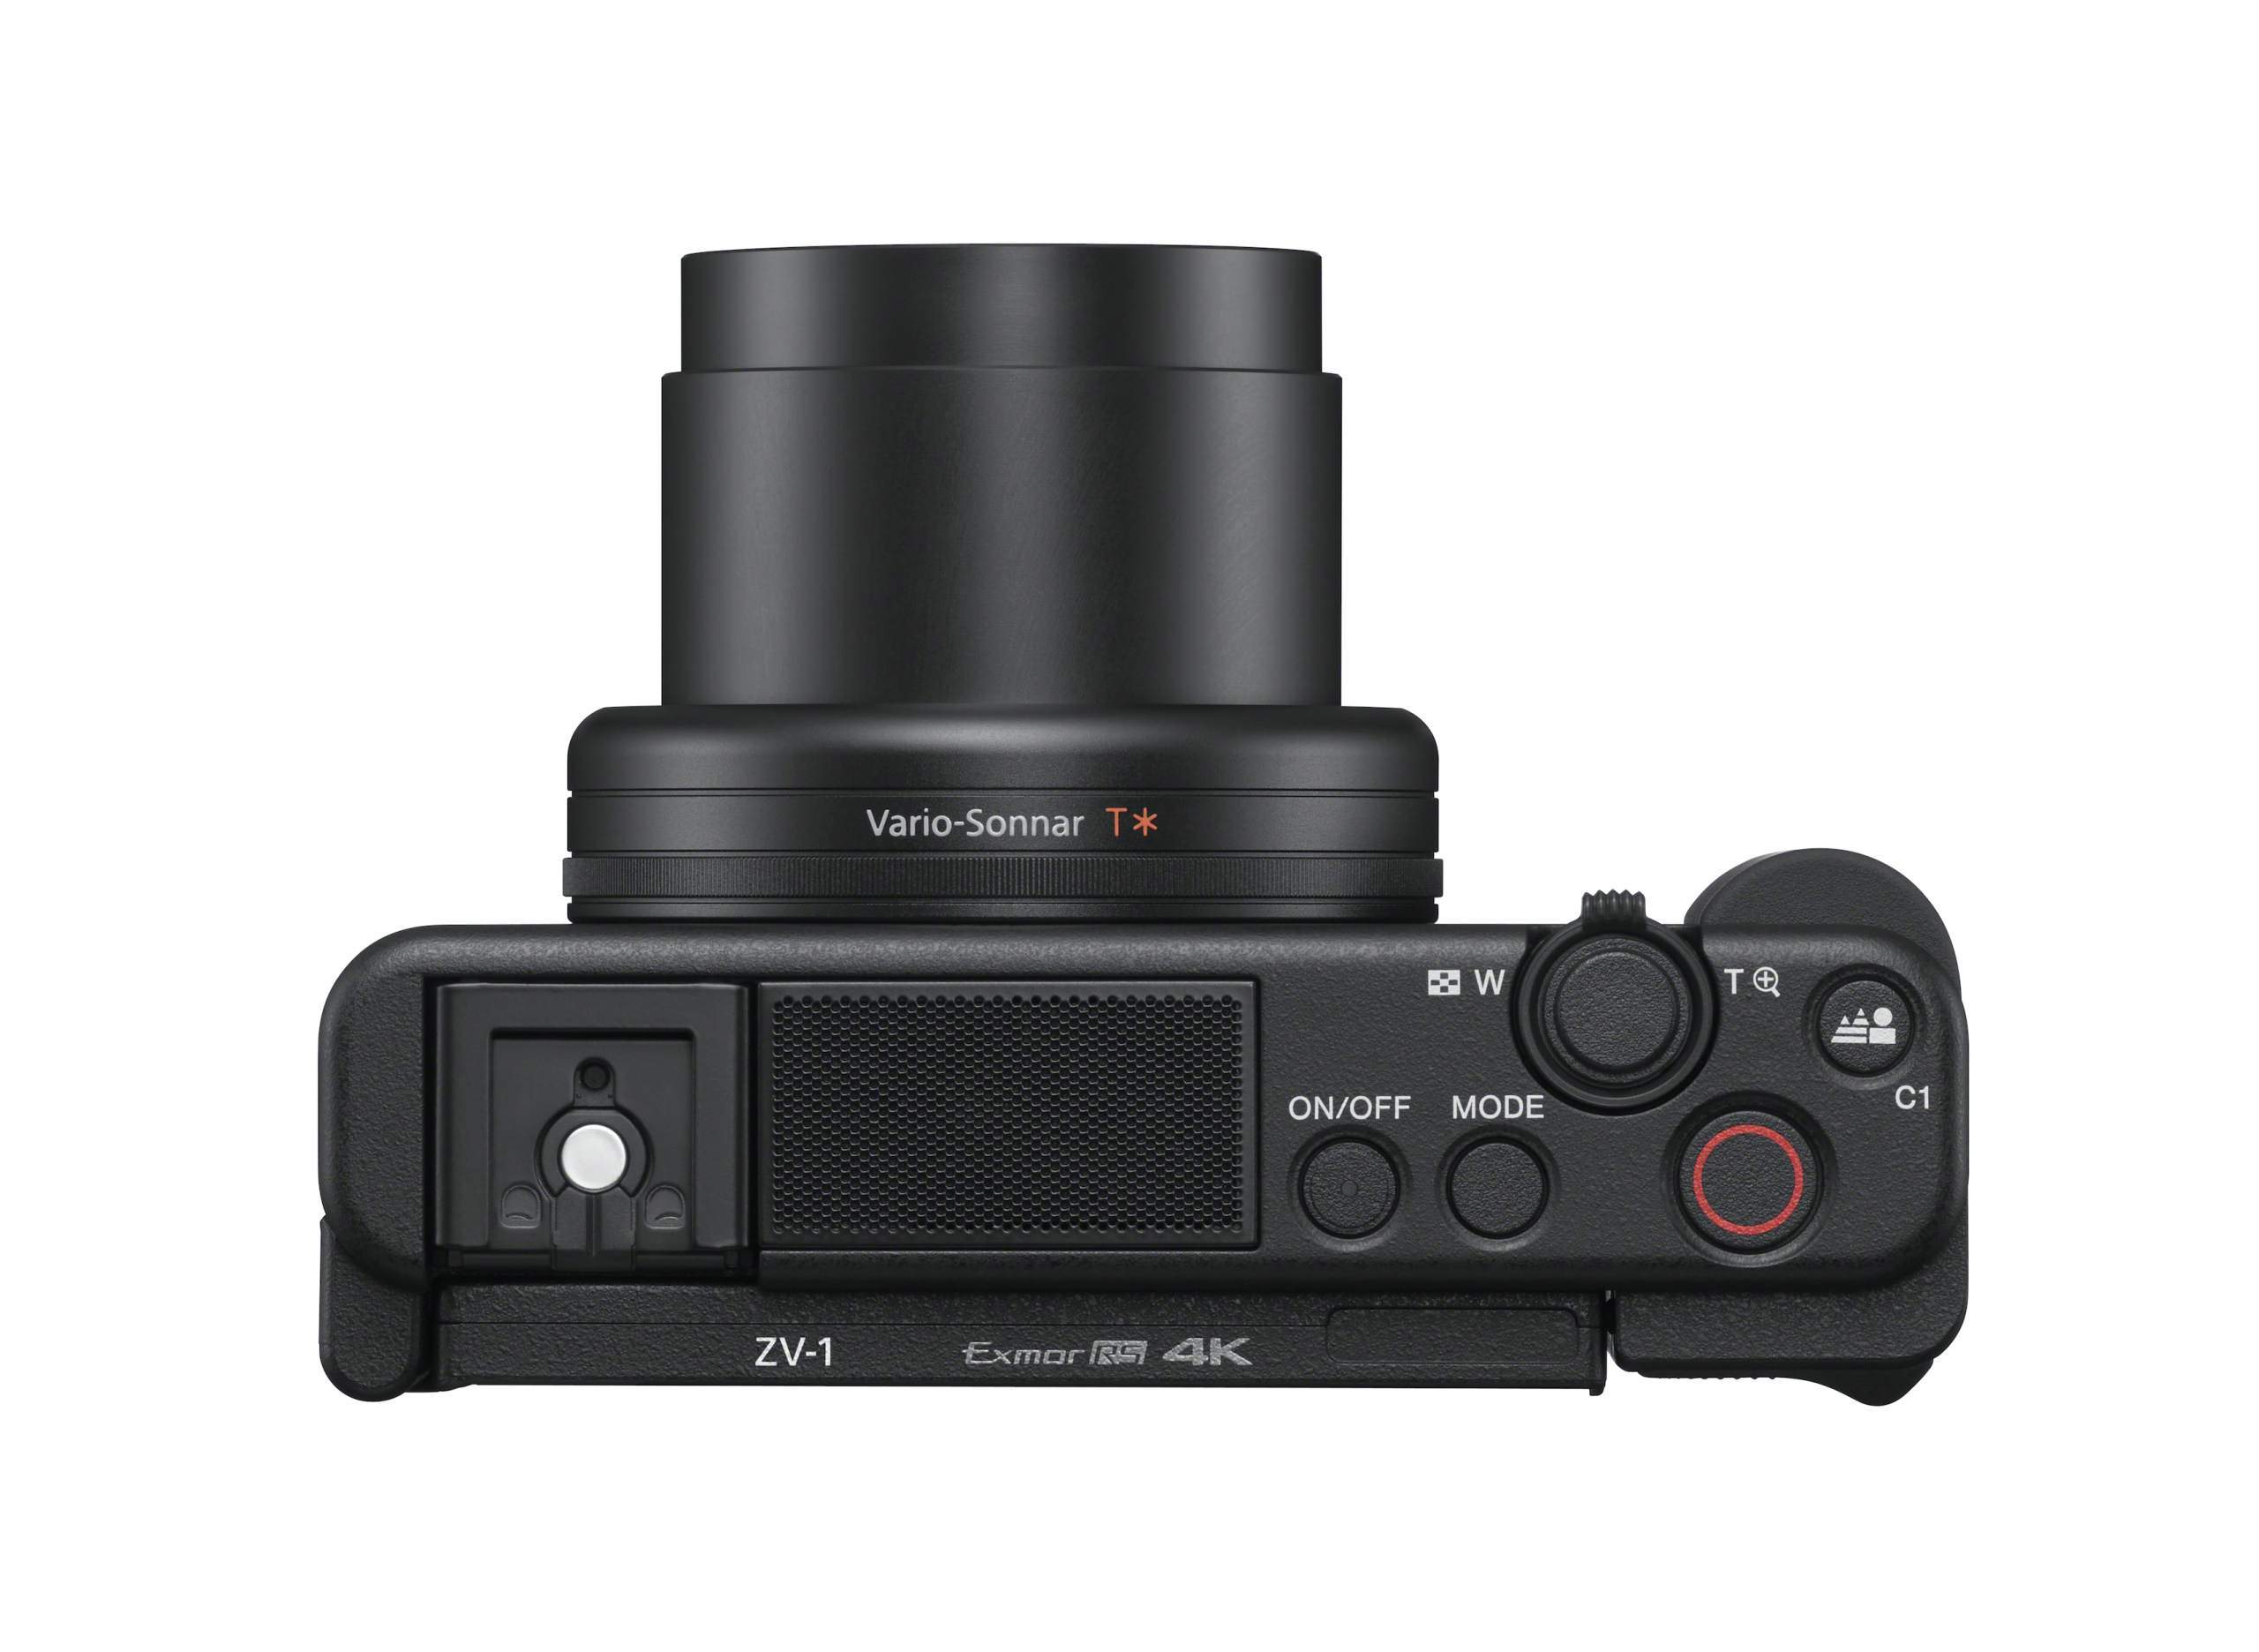 ZV-1 A New Camera for Video